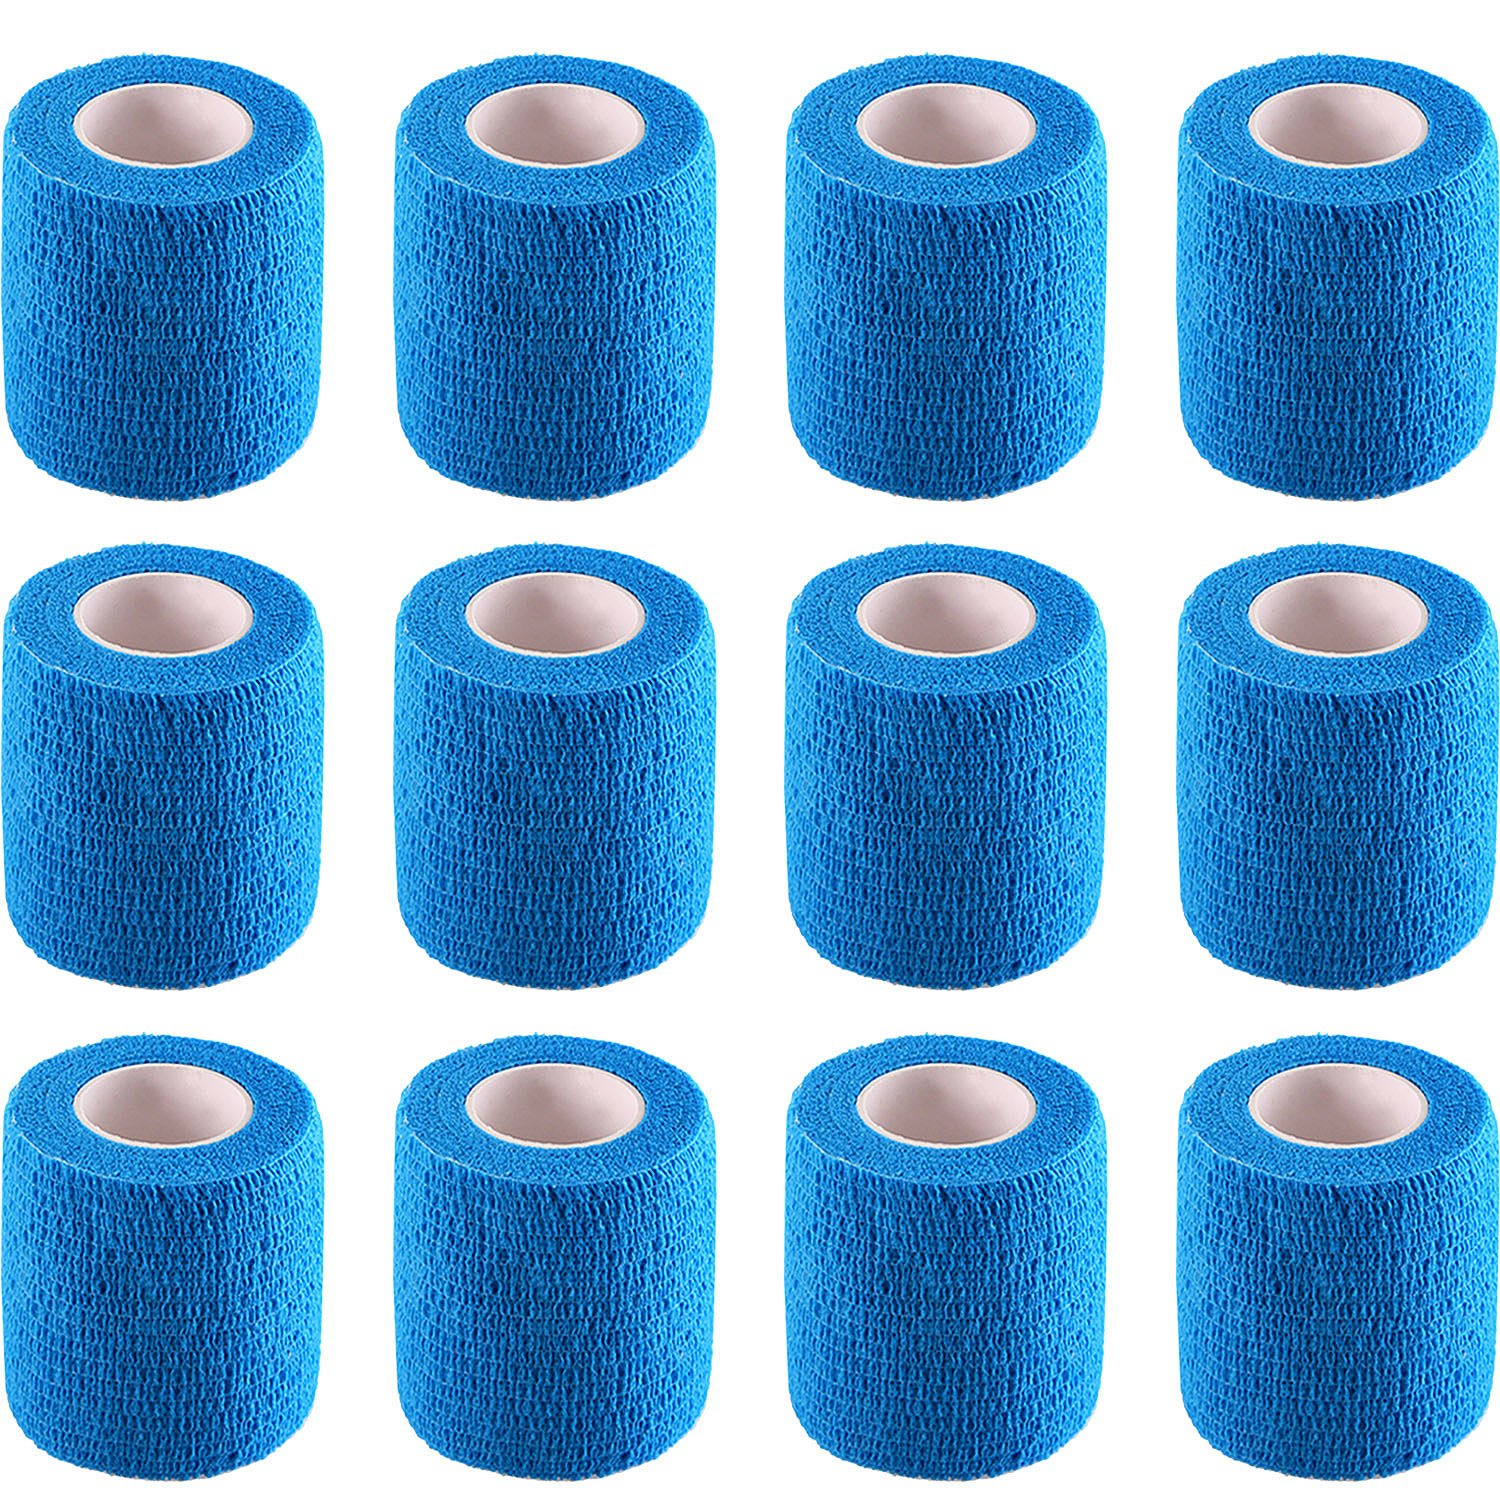 Pangda 12 Pieces Adhesive Bandage Wrap Stretch Self-Adherent Tape for Sports, Wrist, Ankle, 5 Yards Each (2 Inches, Blue)